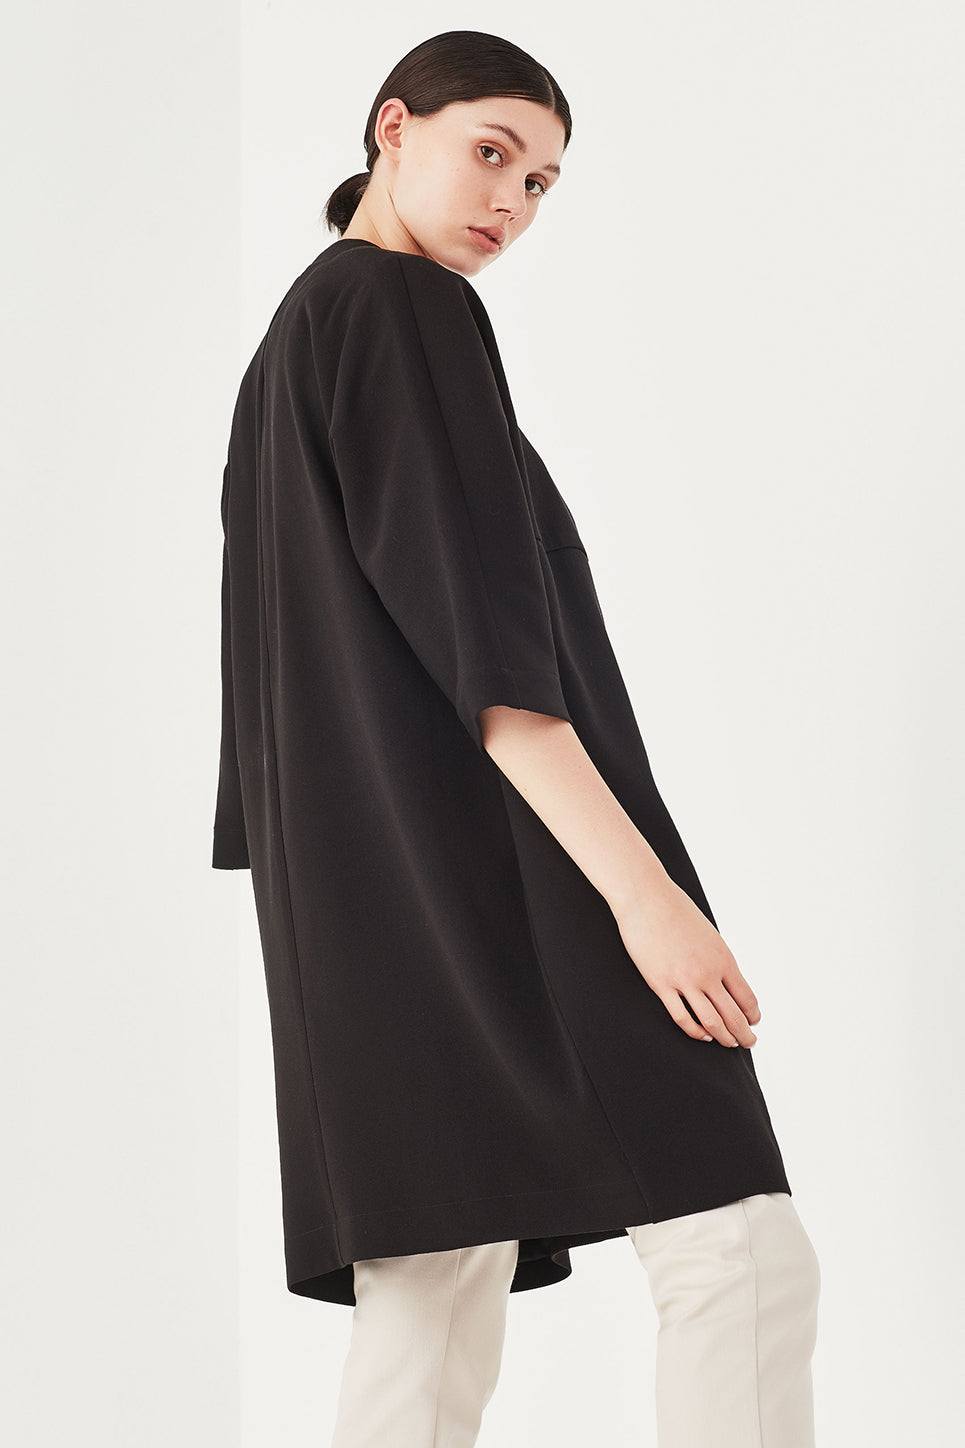 The Allium Coat in Black